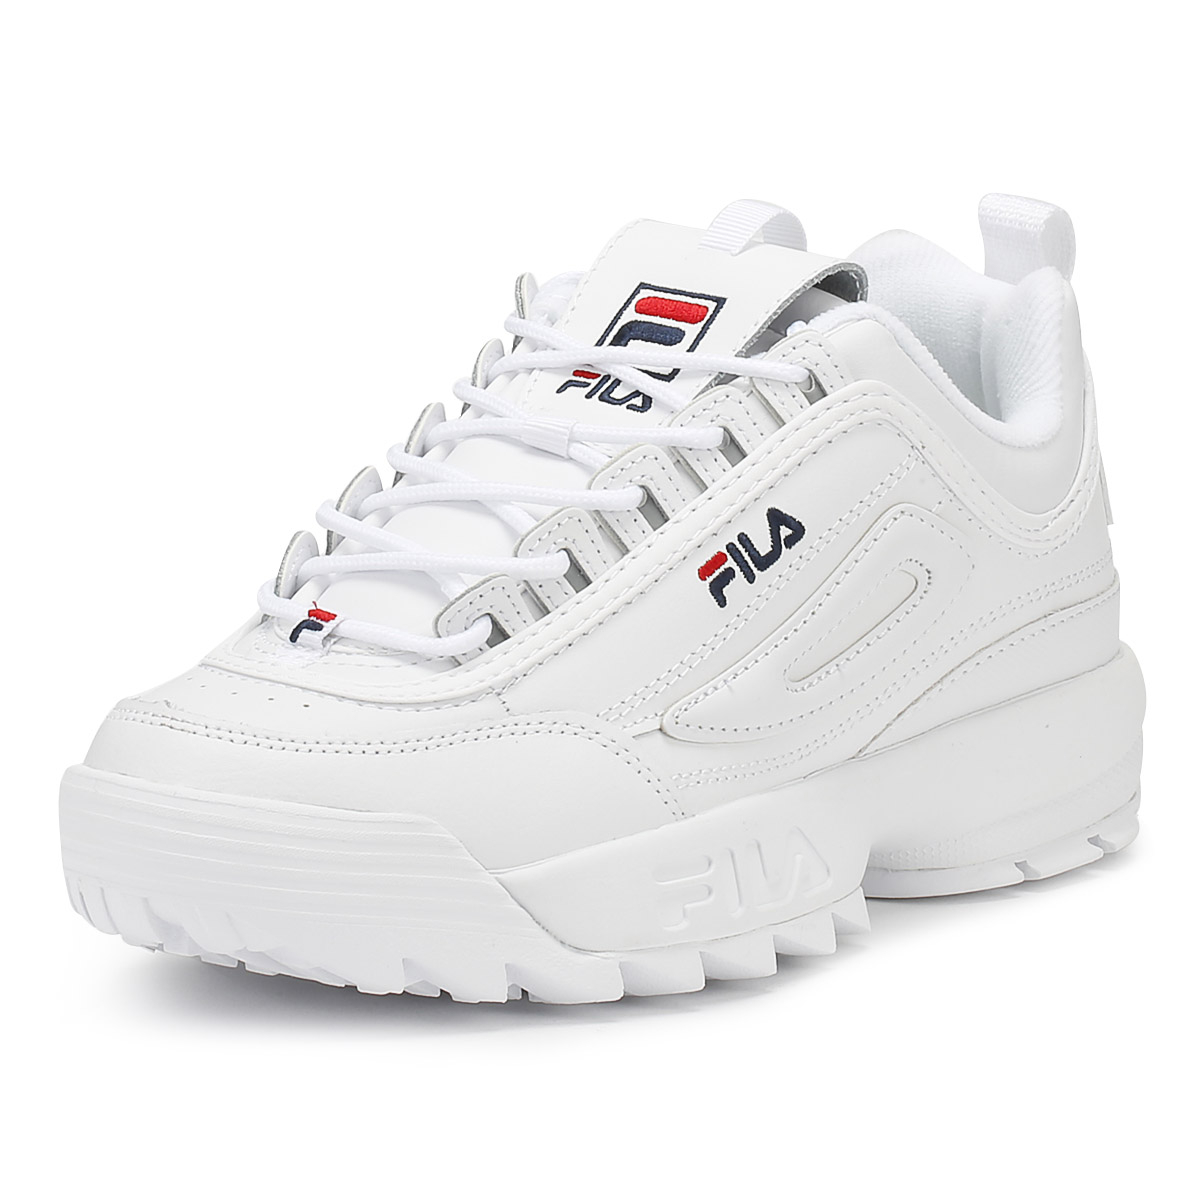 8e55c694f8b Details about Fila Womens Trainers White Disruptor II Premium Sport Casual  Lace Up Shoes